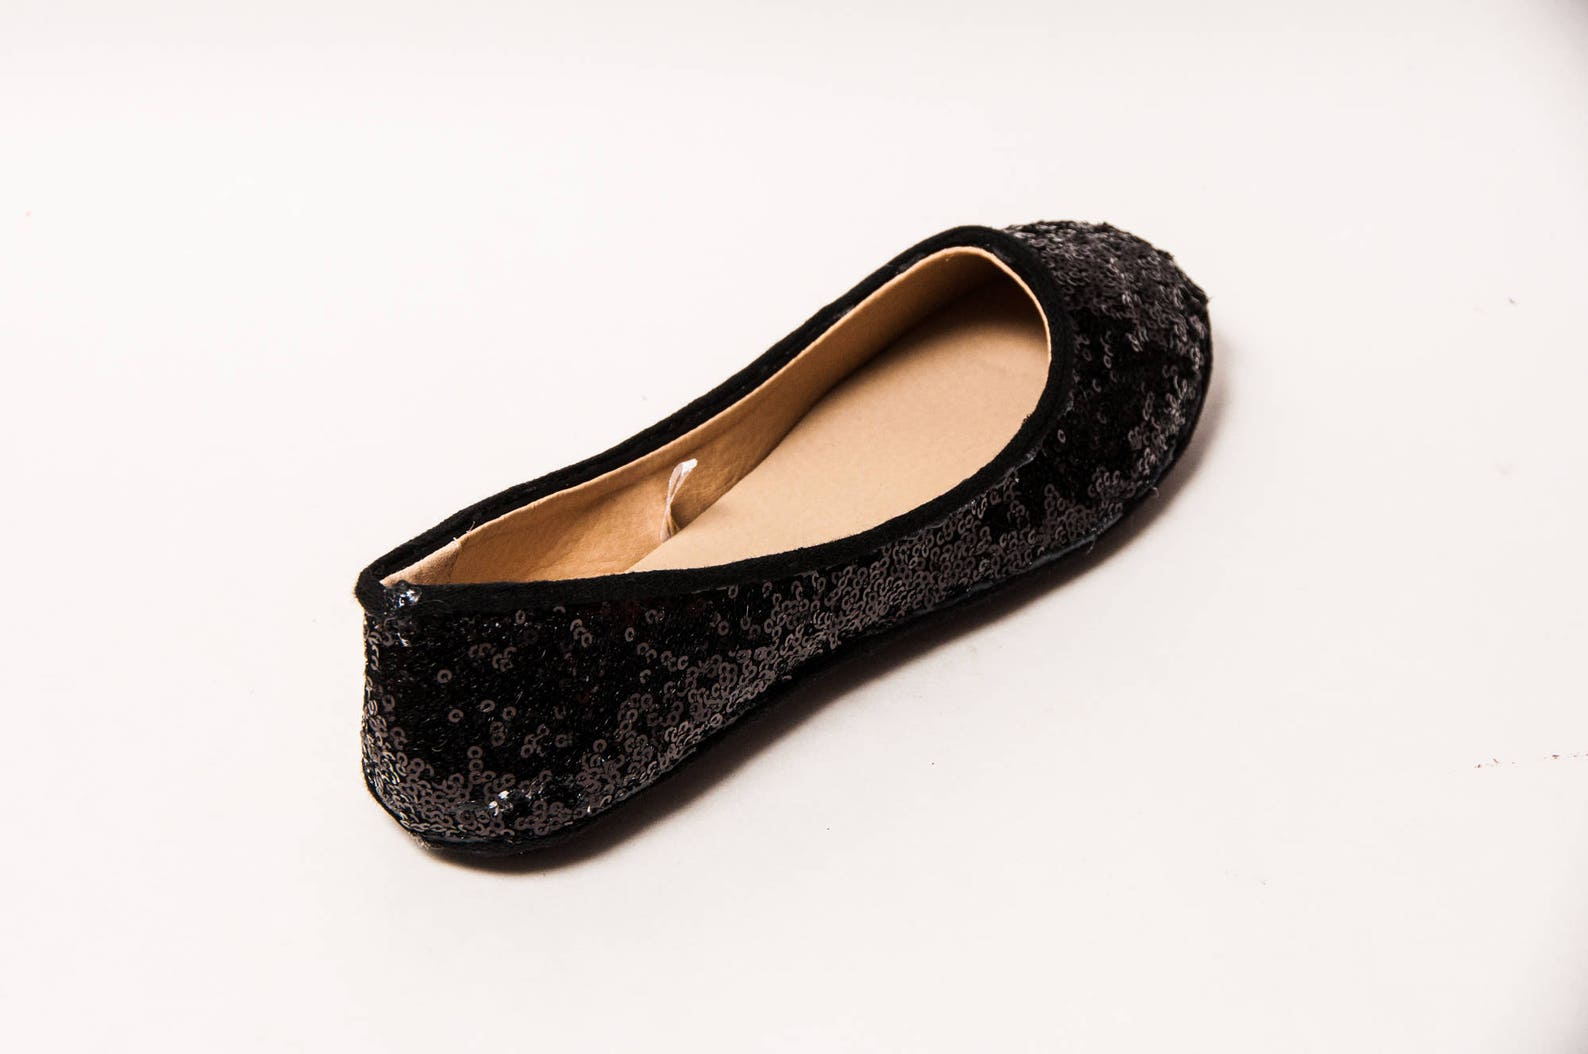 tiny sequin - starlight obsidian black ballet flats slippers shoes by princess pumps